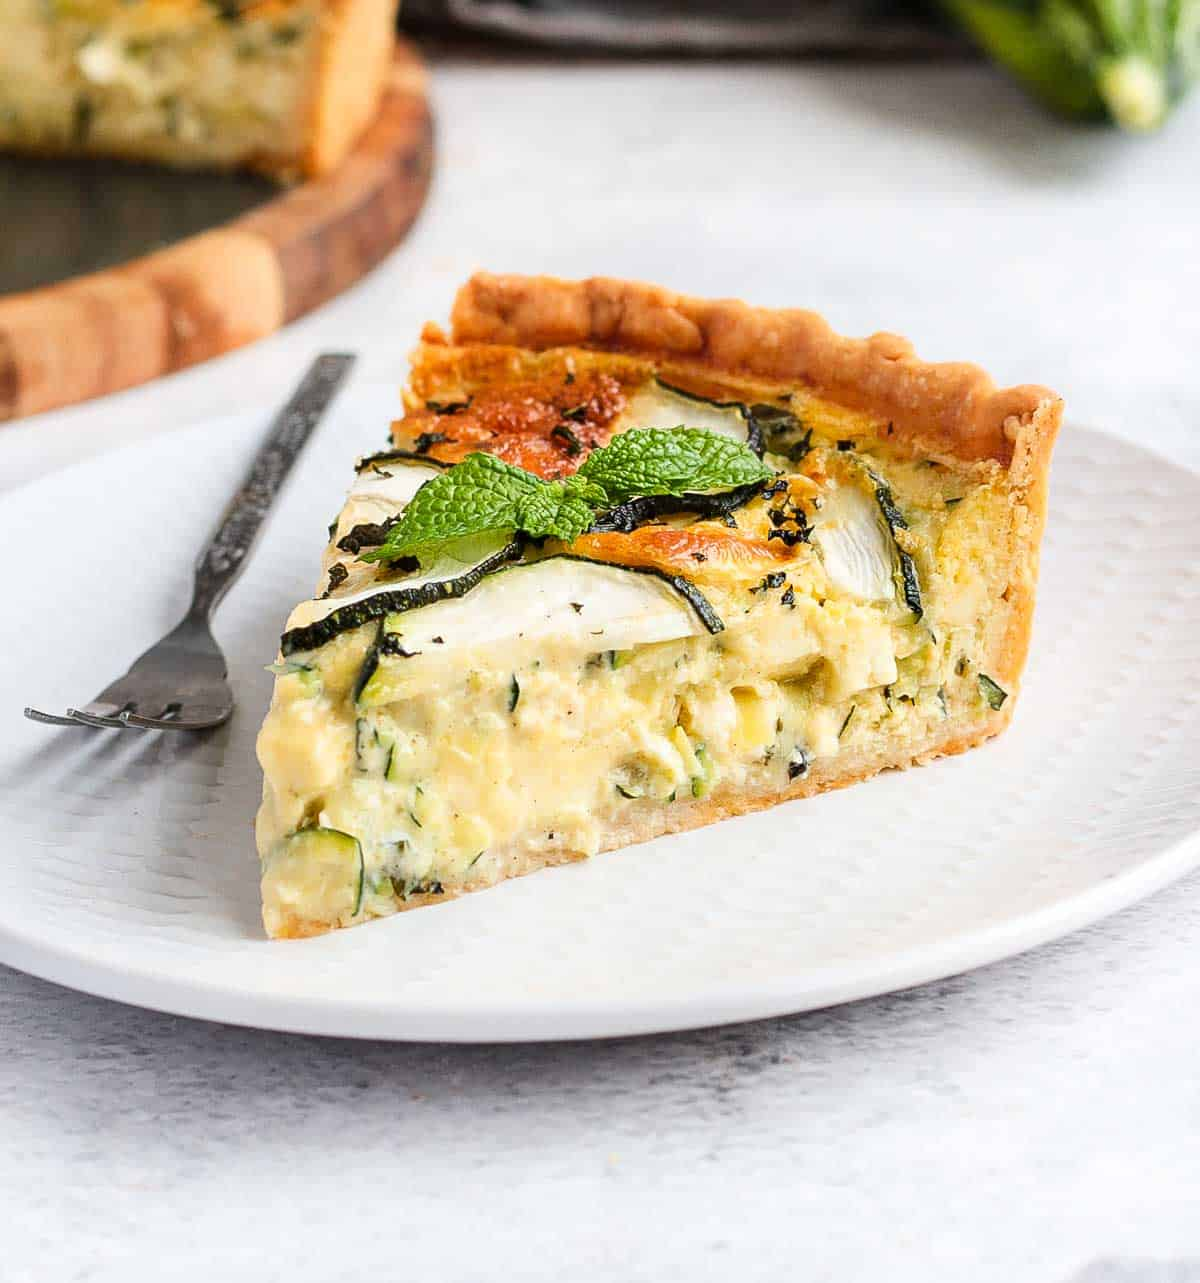 One slice of quiche on a white plate.